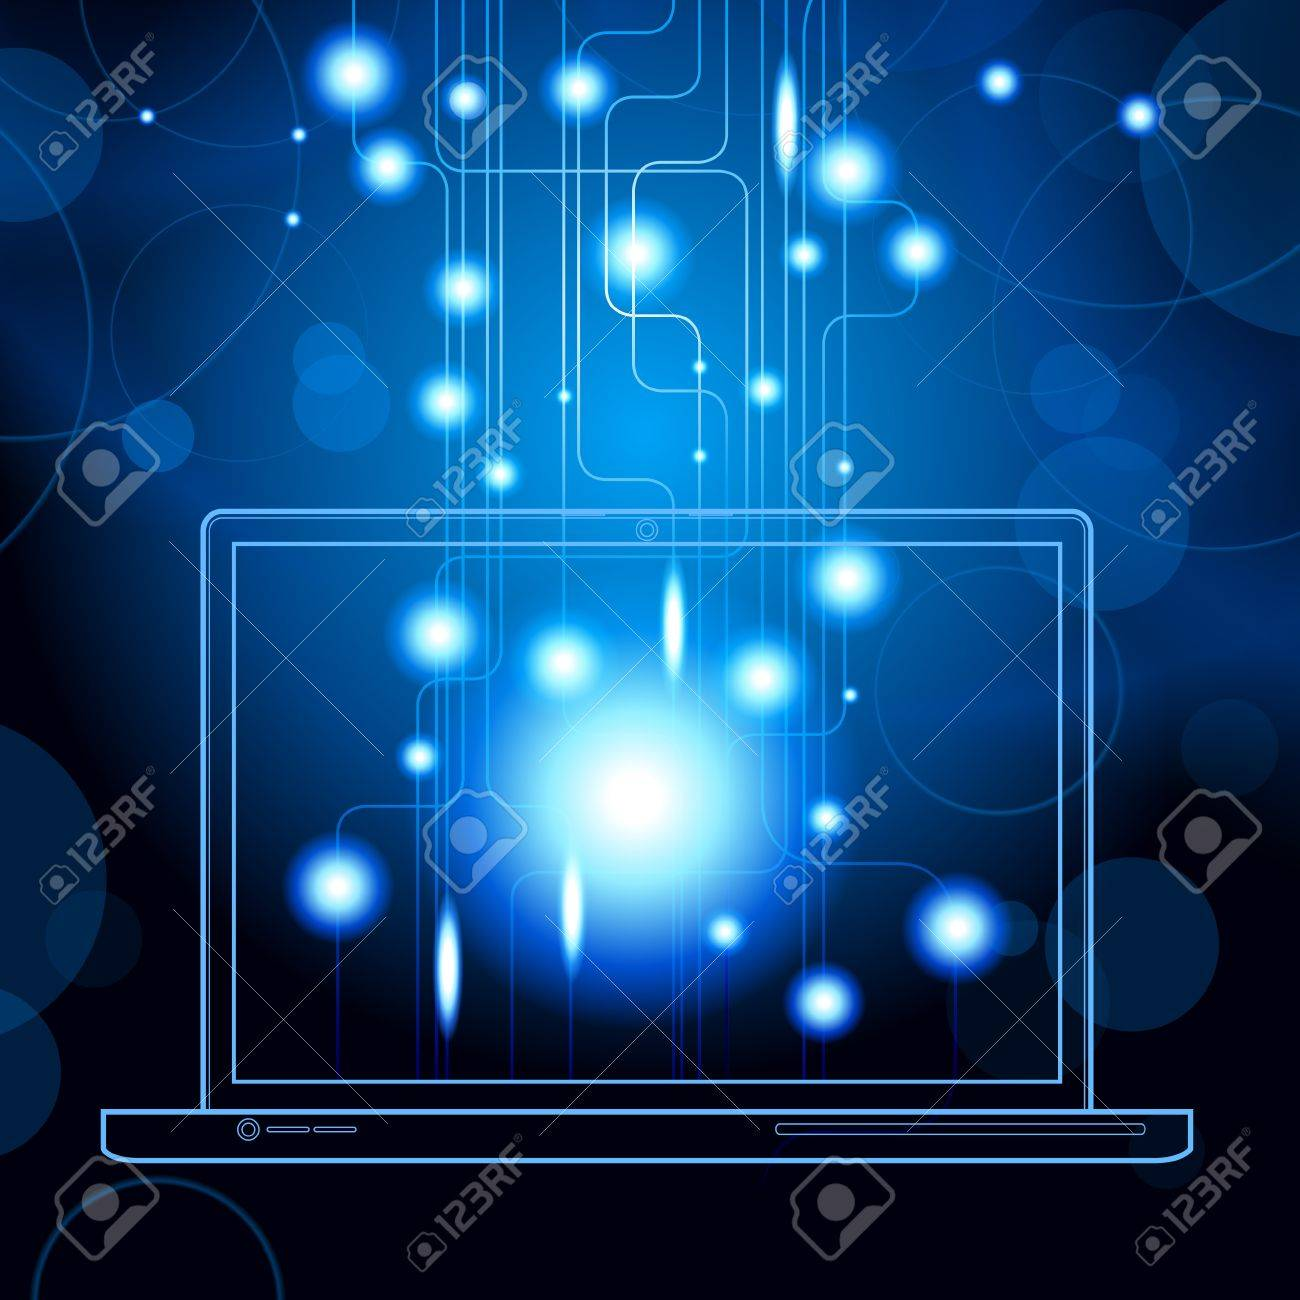 social media, communication in the global computer networks File is saved in AI10 EPS version  This illustration contains a transparency Stock Vector - 18021586